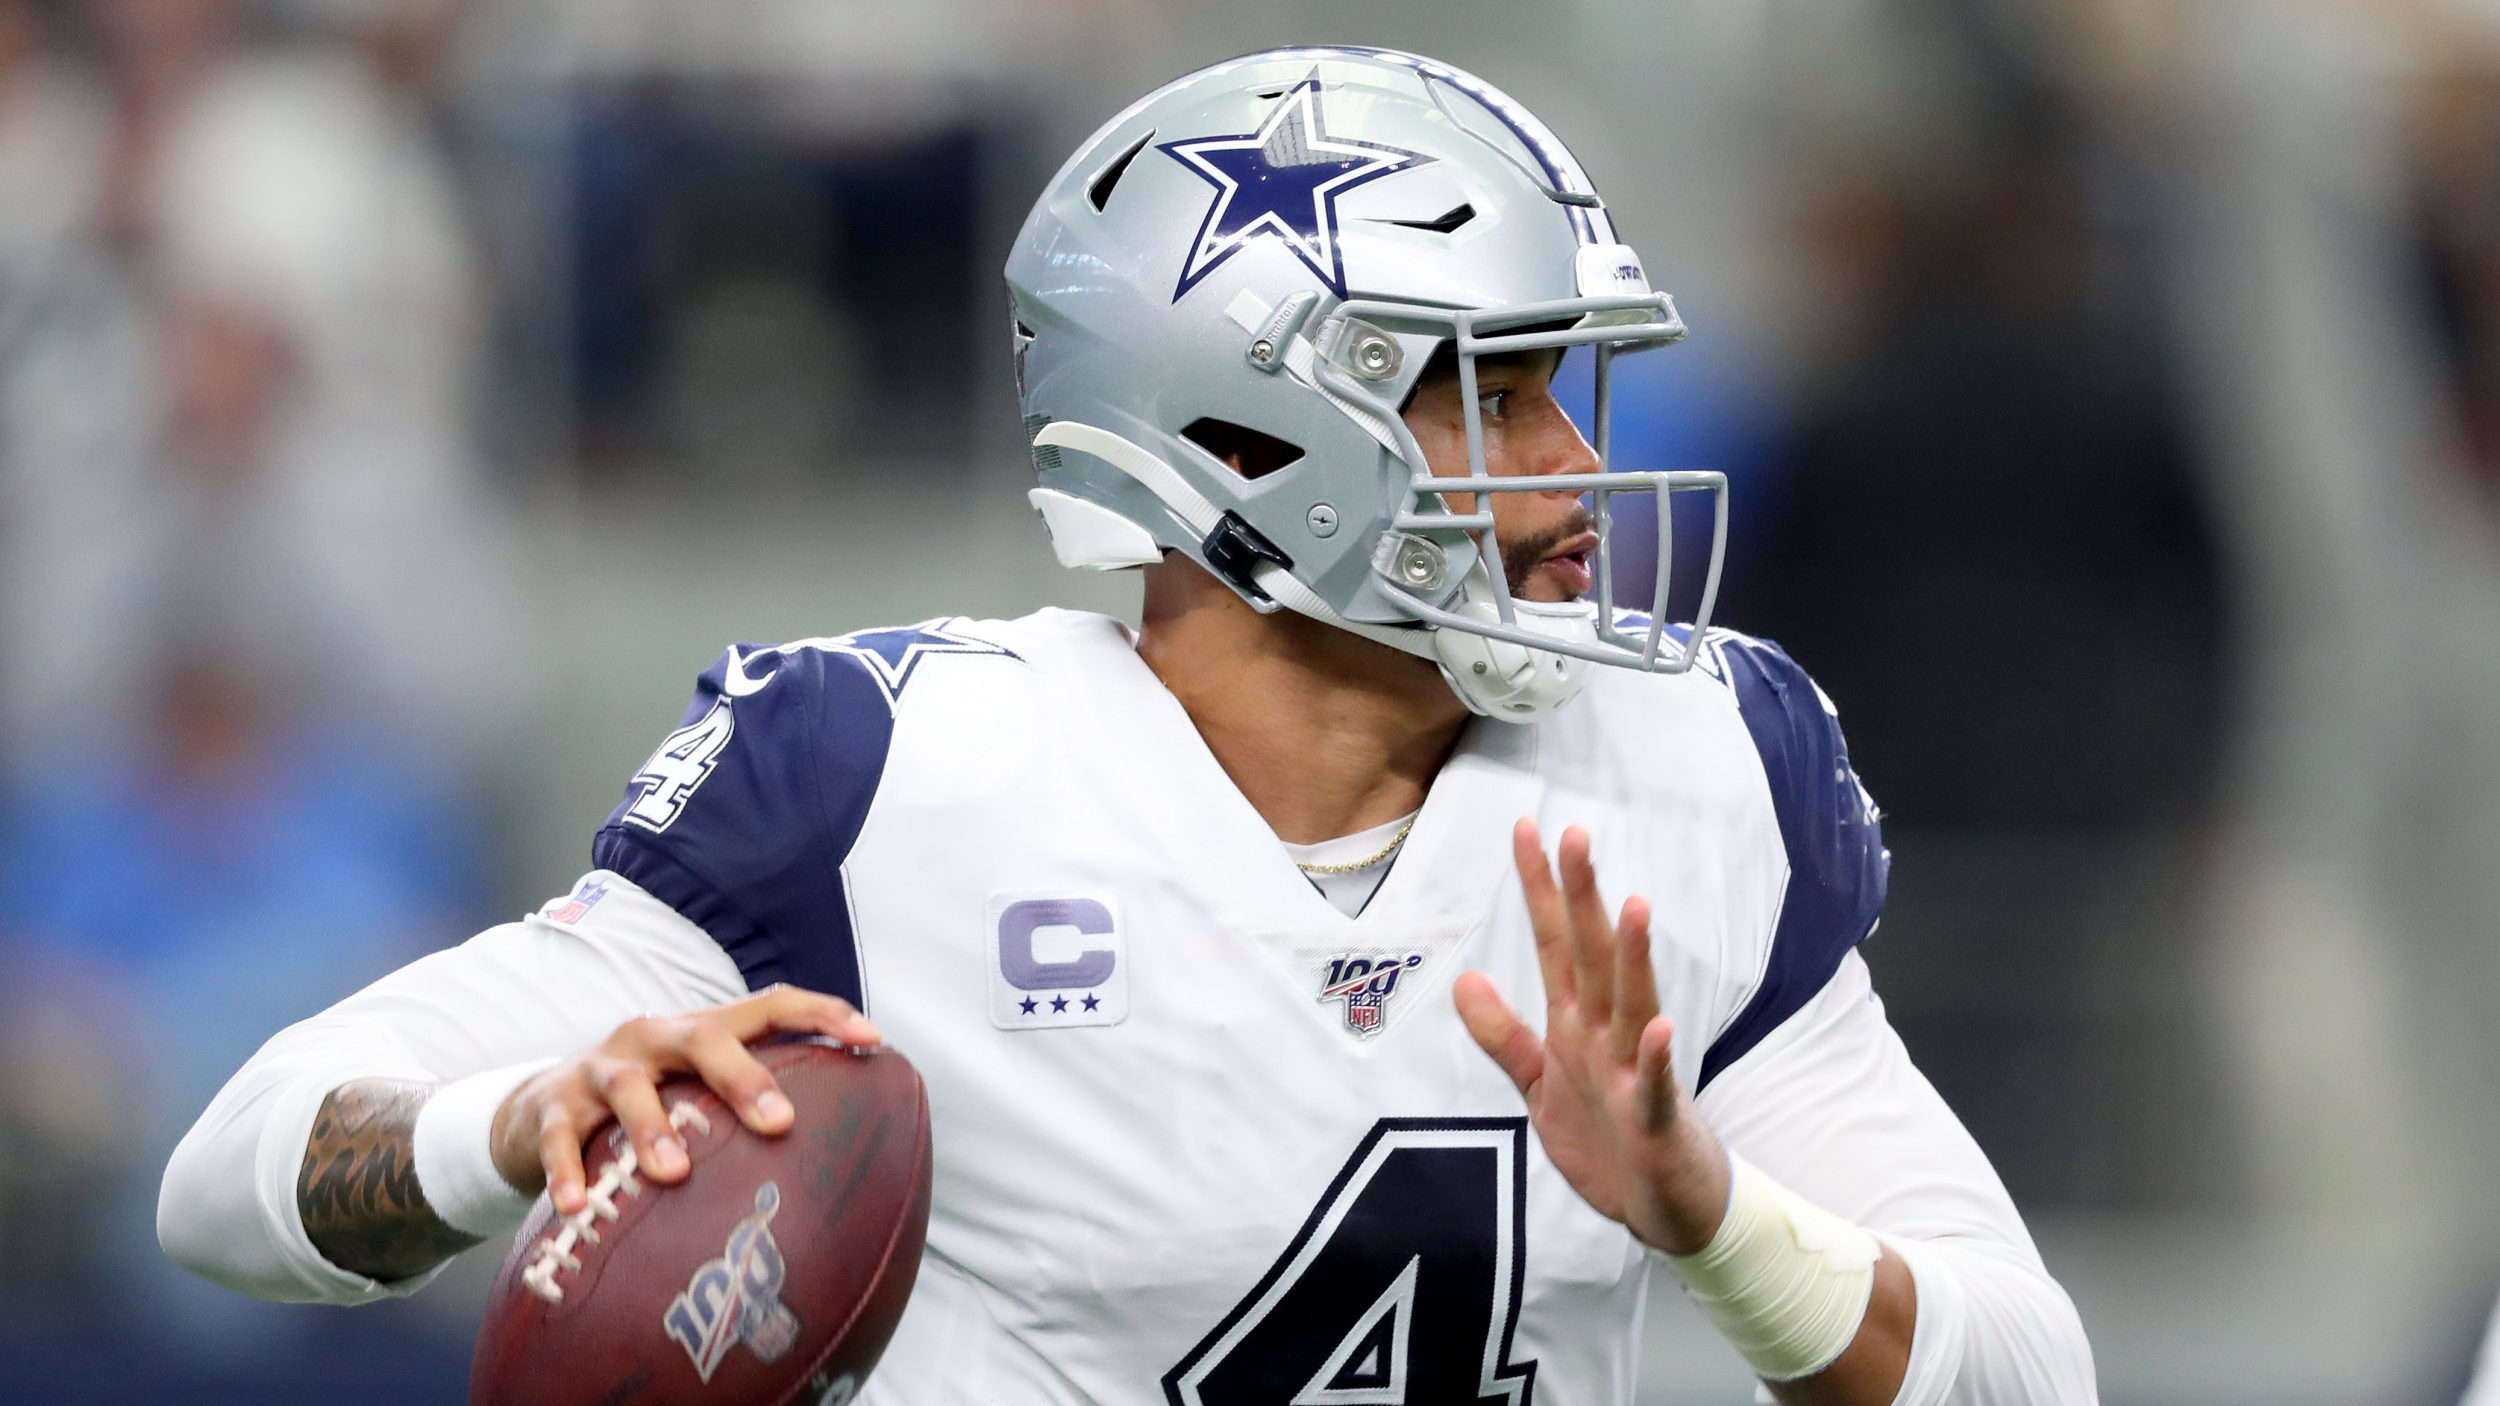 Dallas Cowboys lost against the Saints because of their Passing Game, Claims NFL Expert